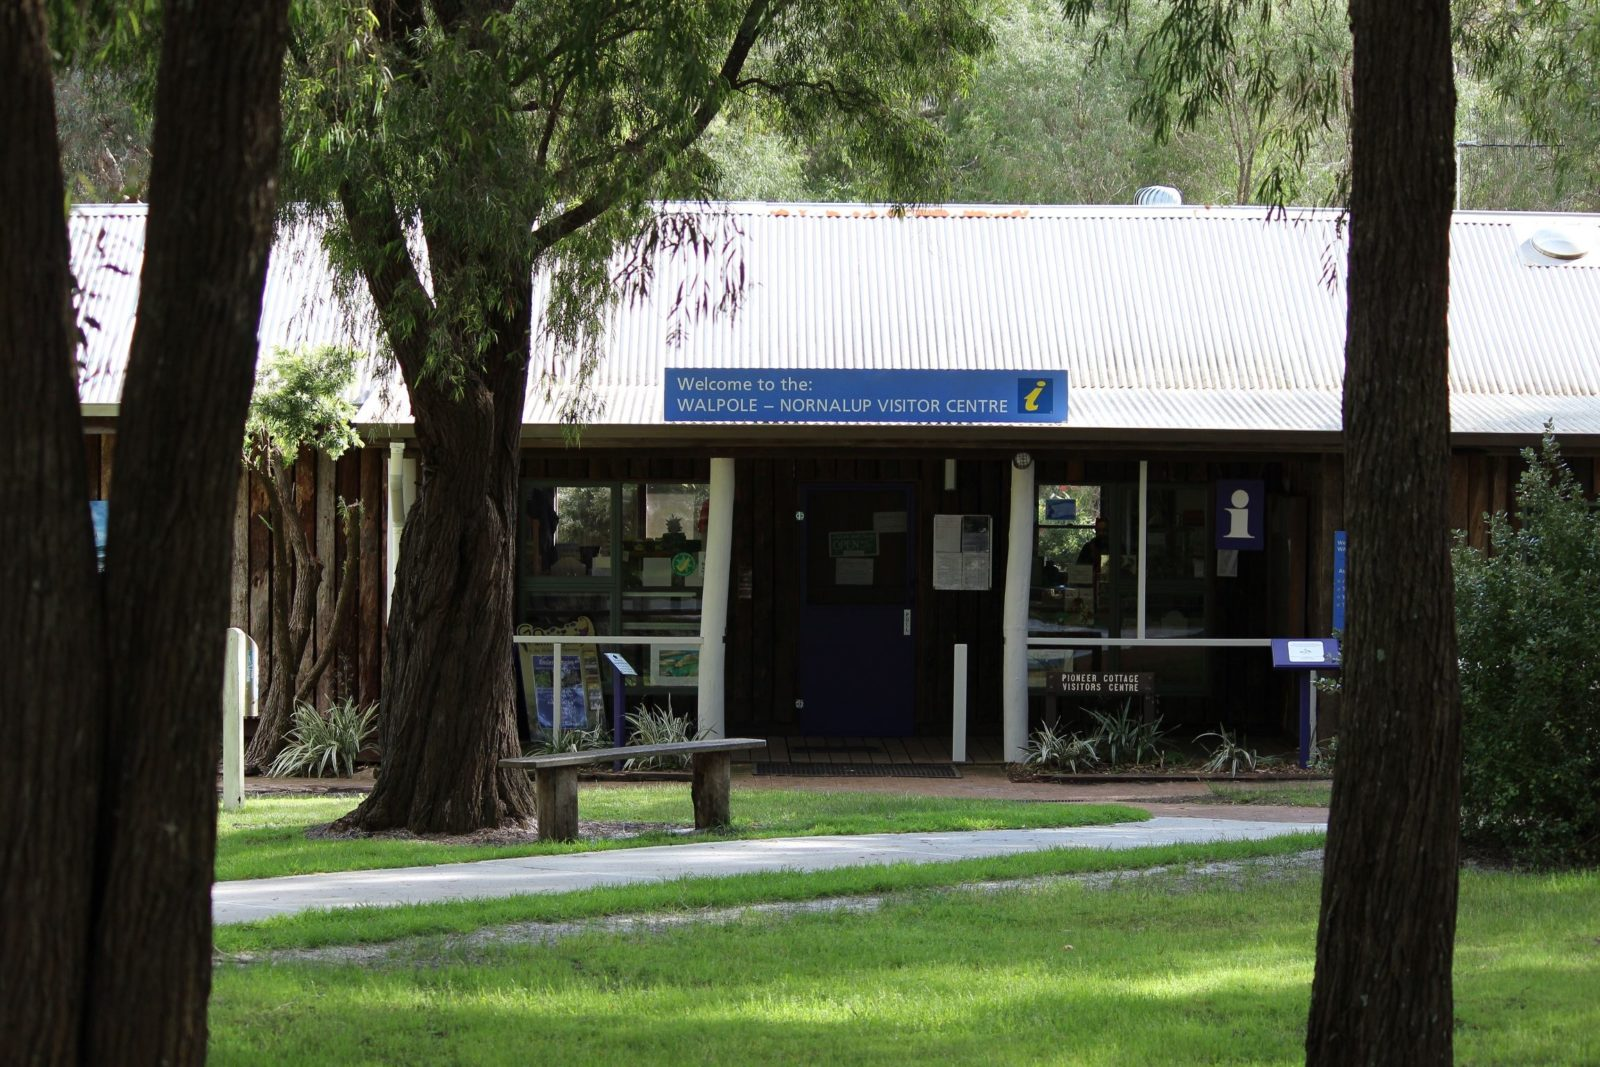 Walpole-Nornalup Visitor Centre